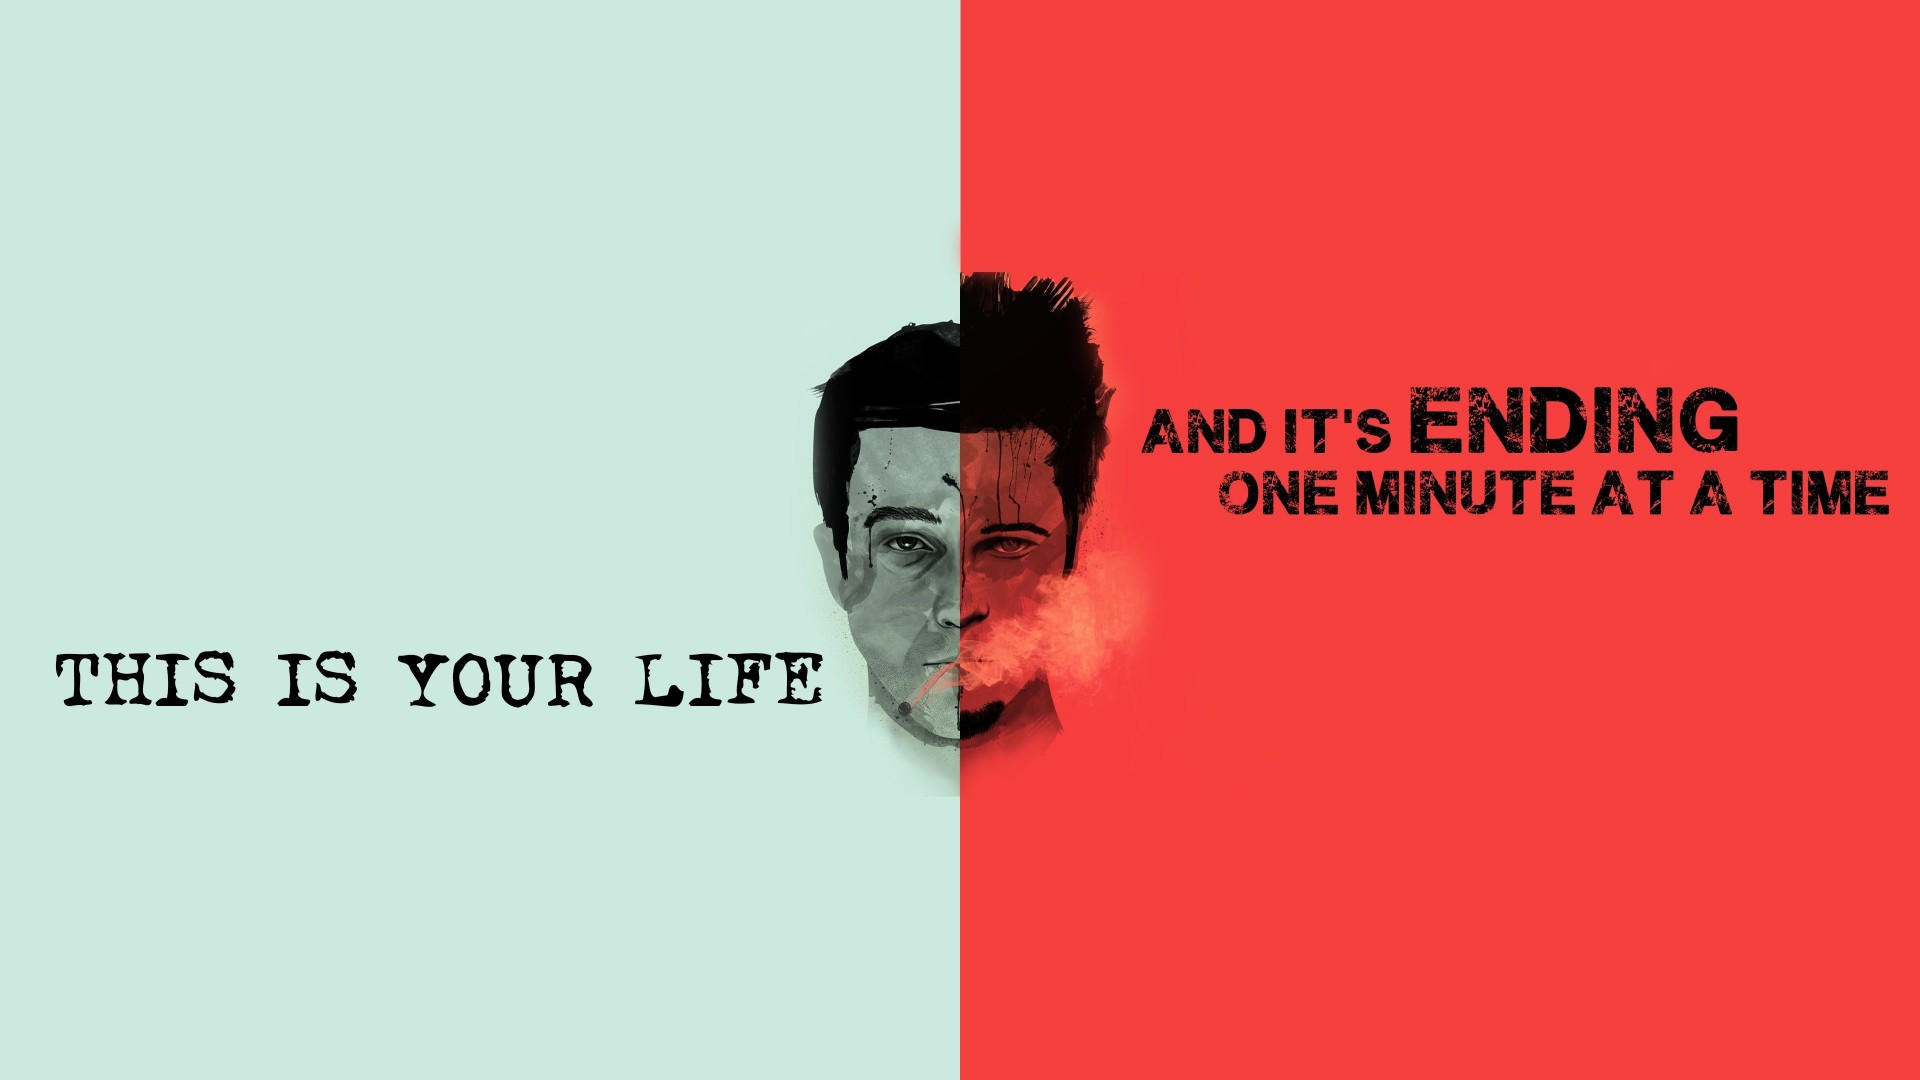 Fight Club Quote Wallpaper for Desktop 1920x1080